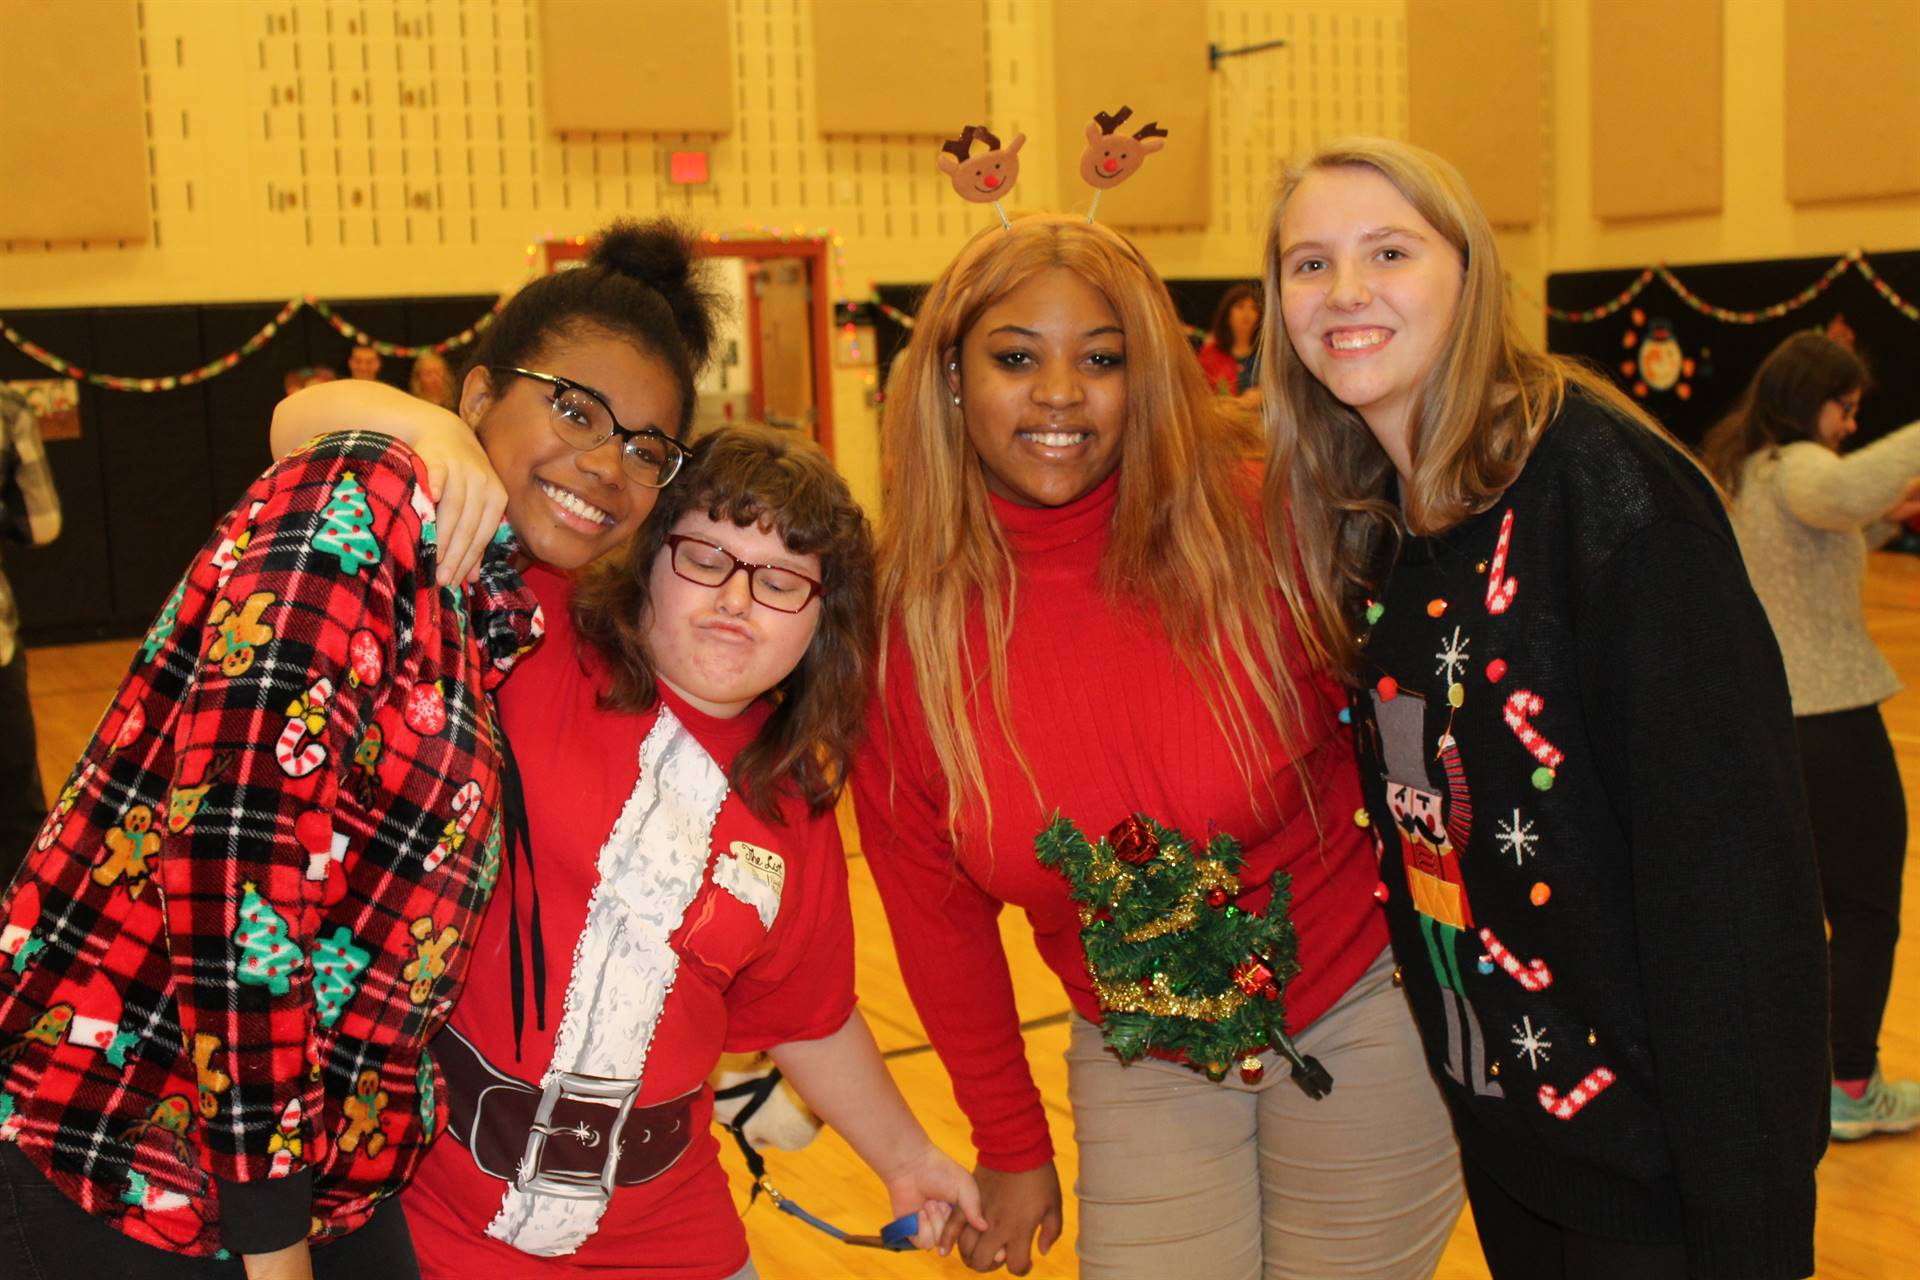 Students at the Holiday Sweater Dance